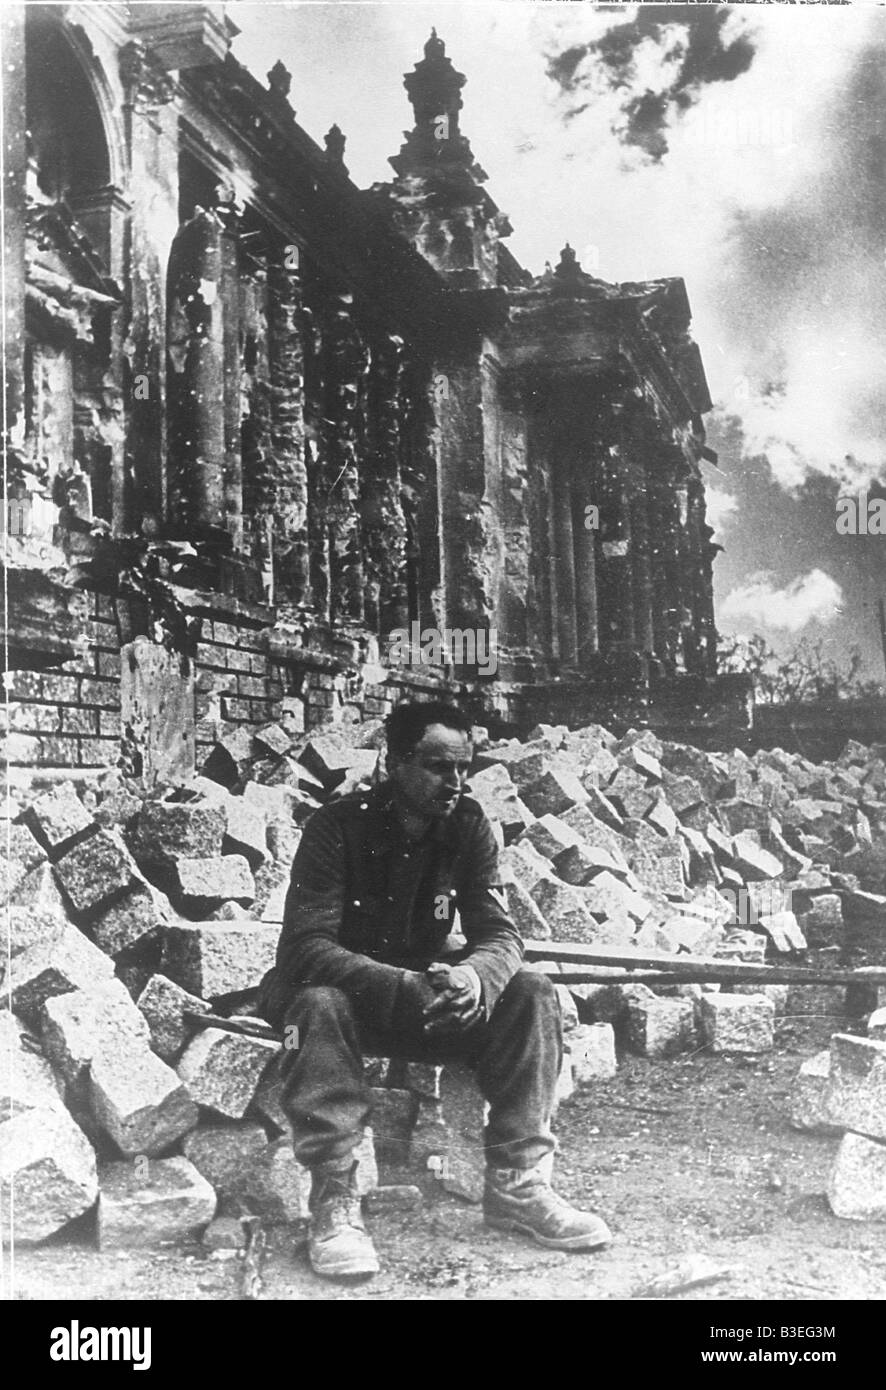 german soldier by the reichstag 1945 stock photo 19374312 alamy